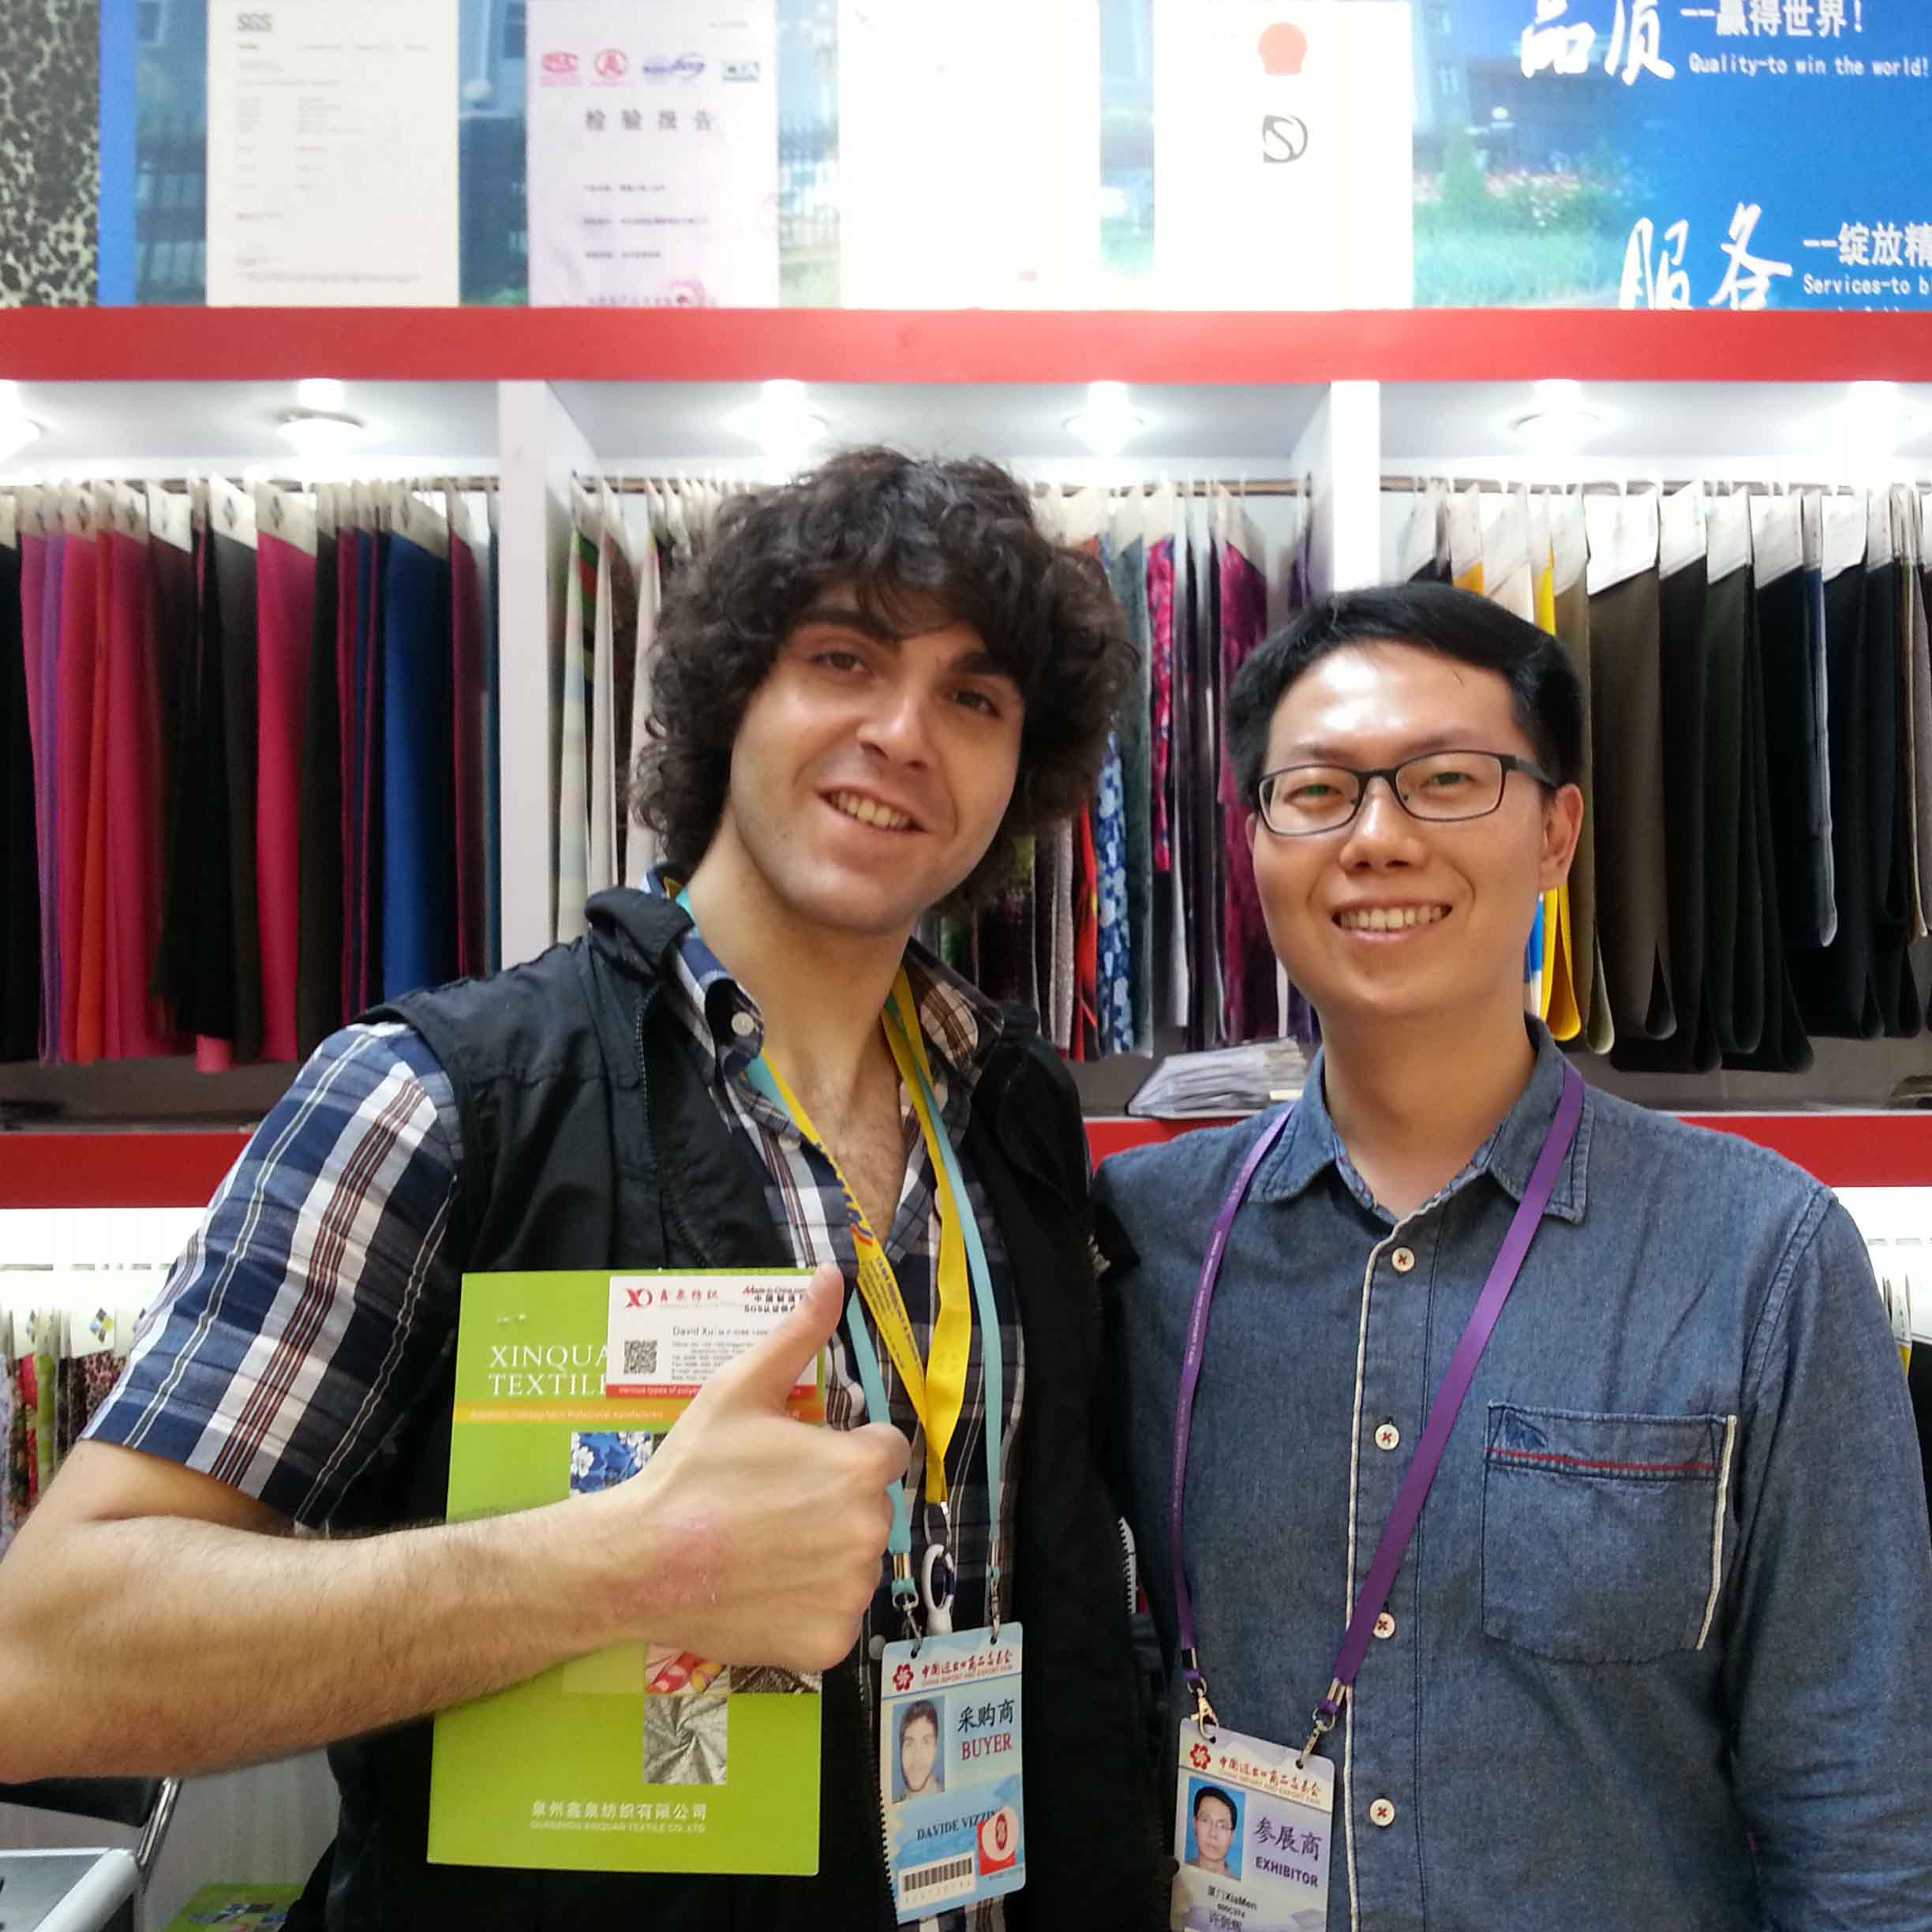 XINQUAN TEXTILE CO.,LTD at 117TH SESSION of CANTON FAIR